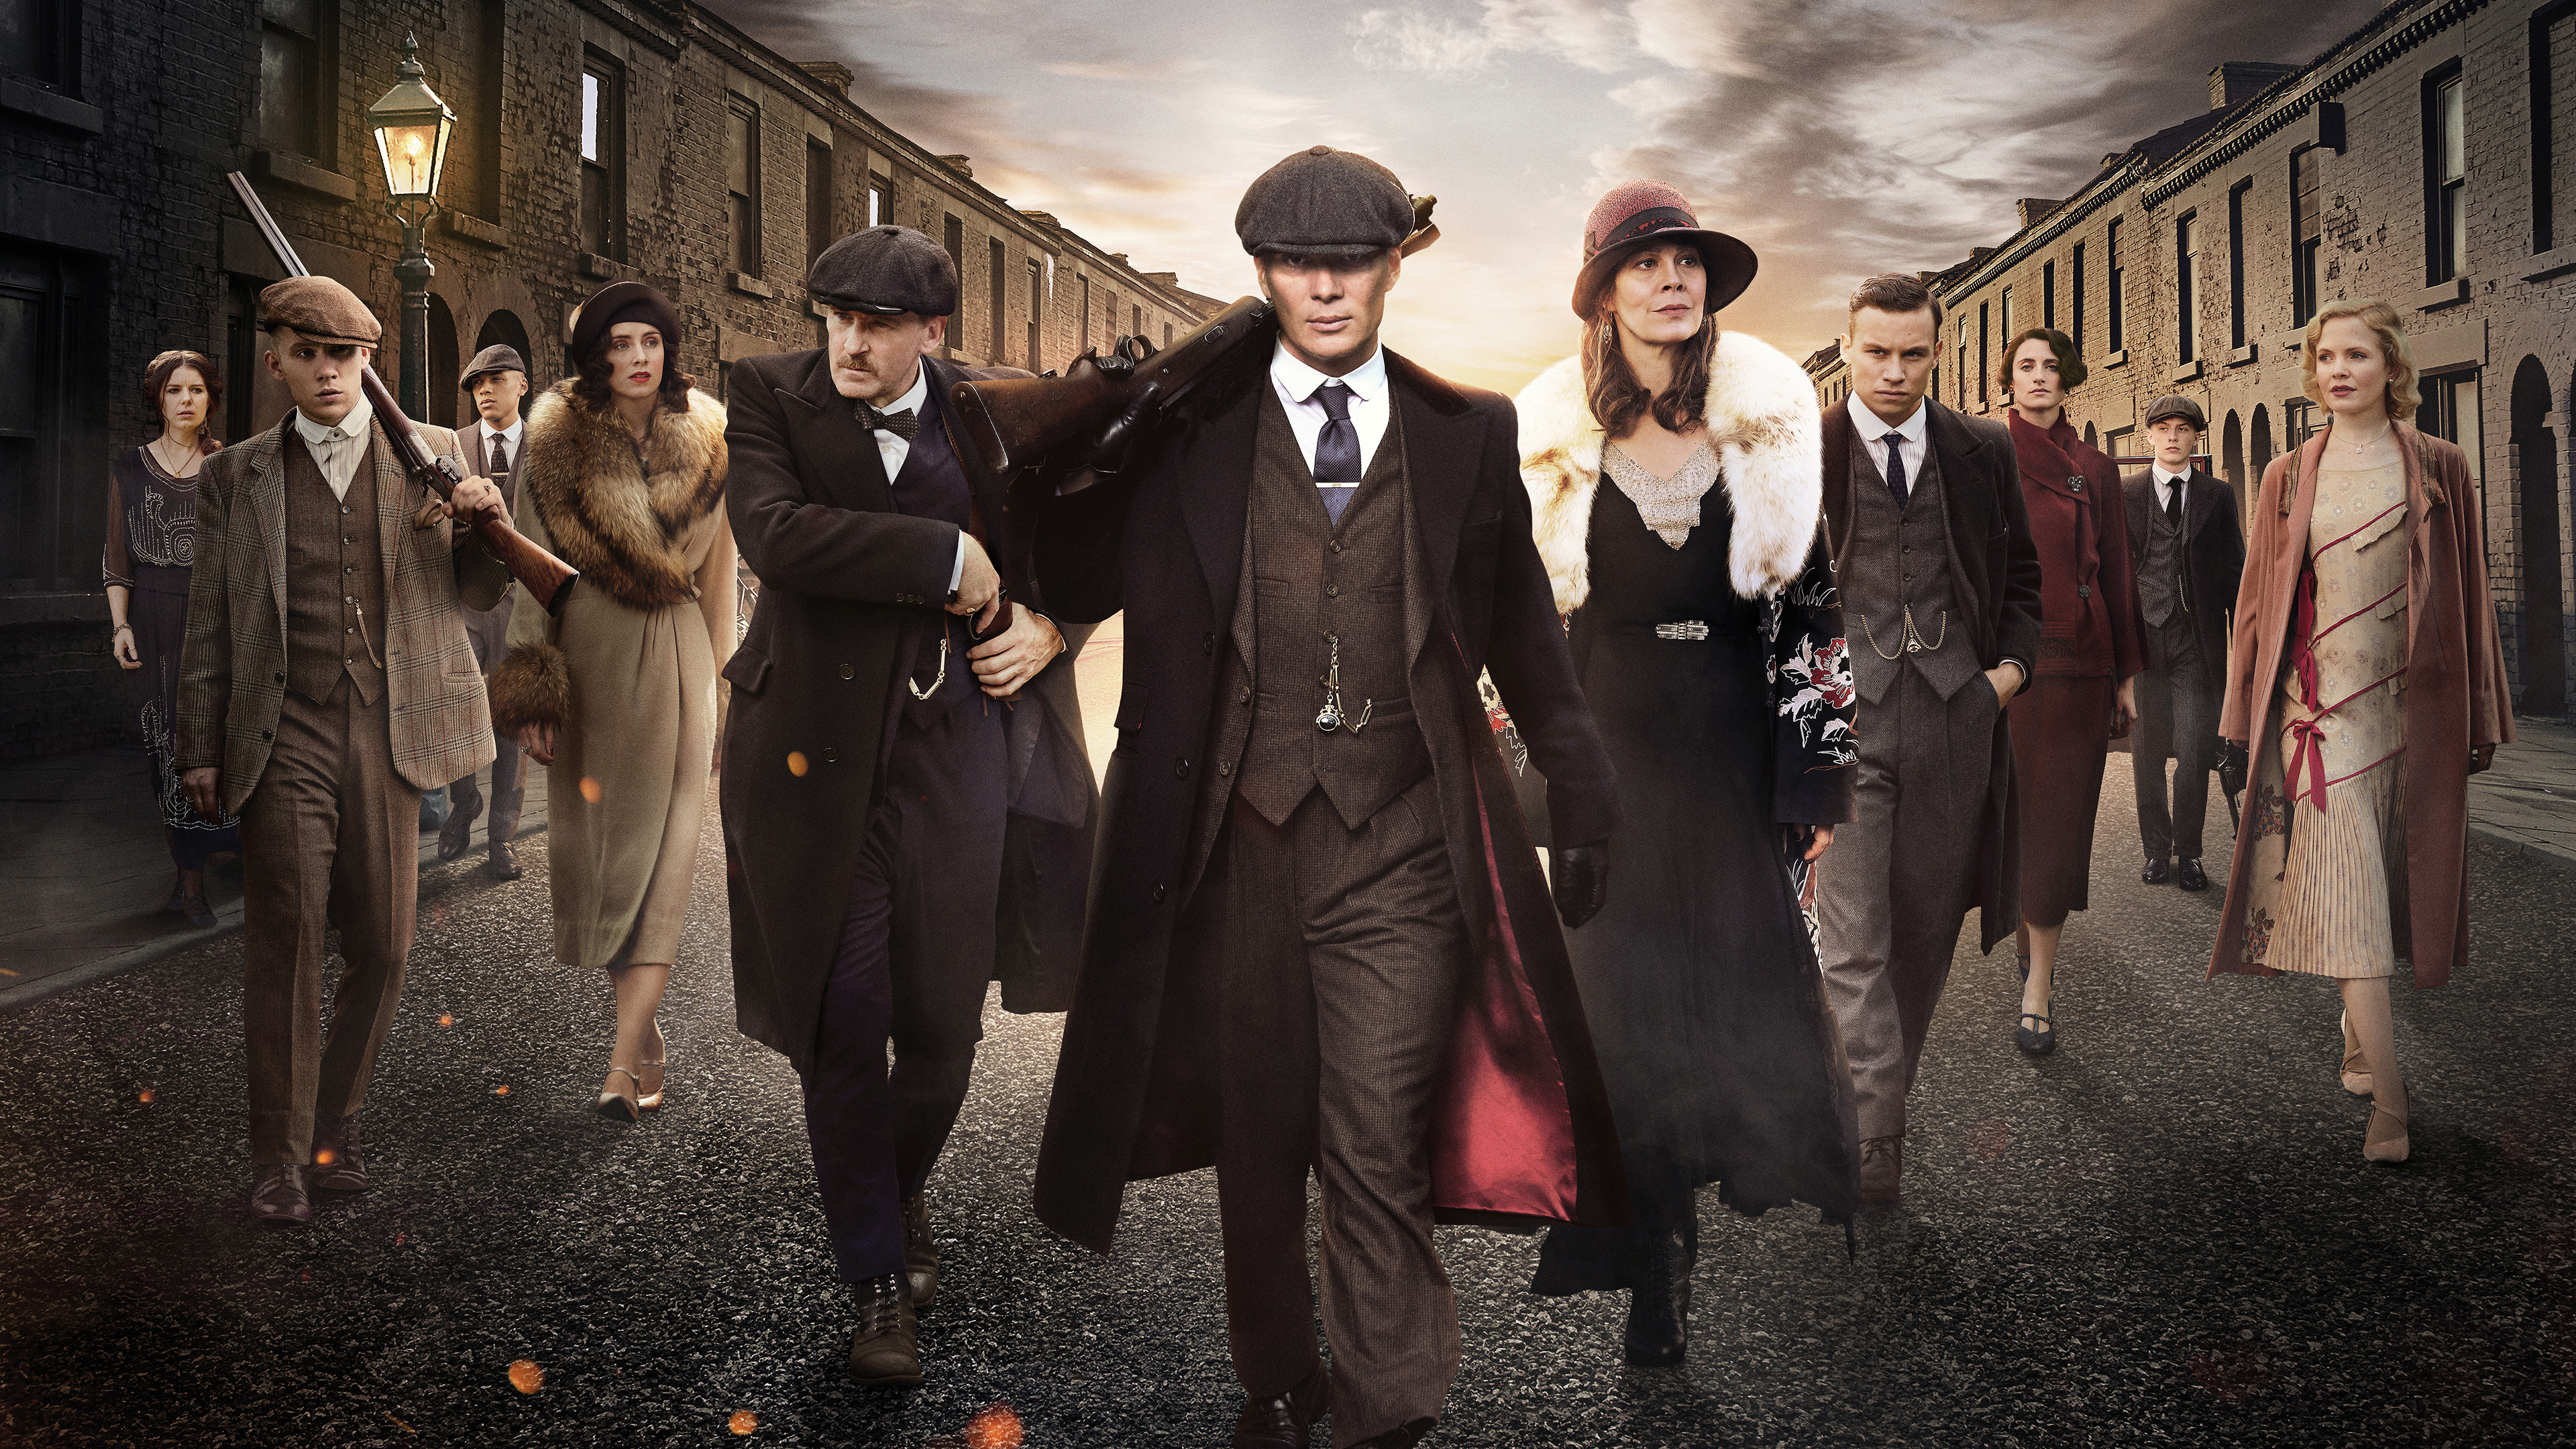 3840x2160 Peaky Blinders 4k Hd 4k Wallpapers Images Backgrounds